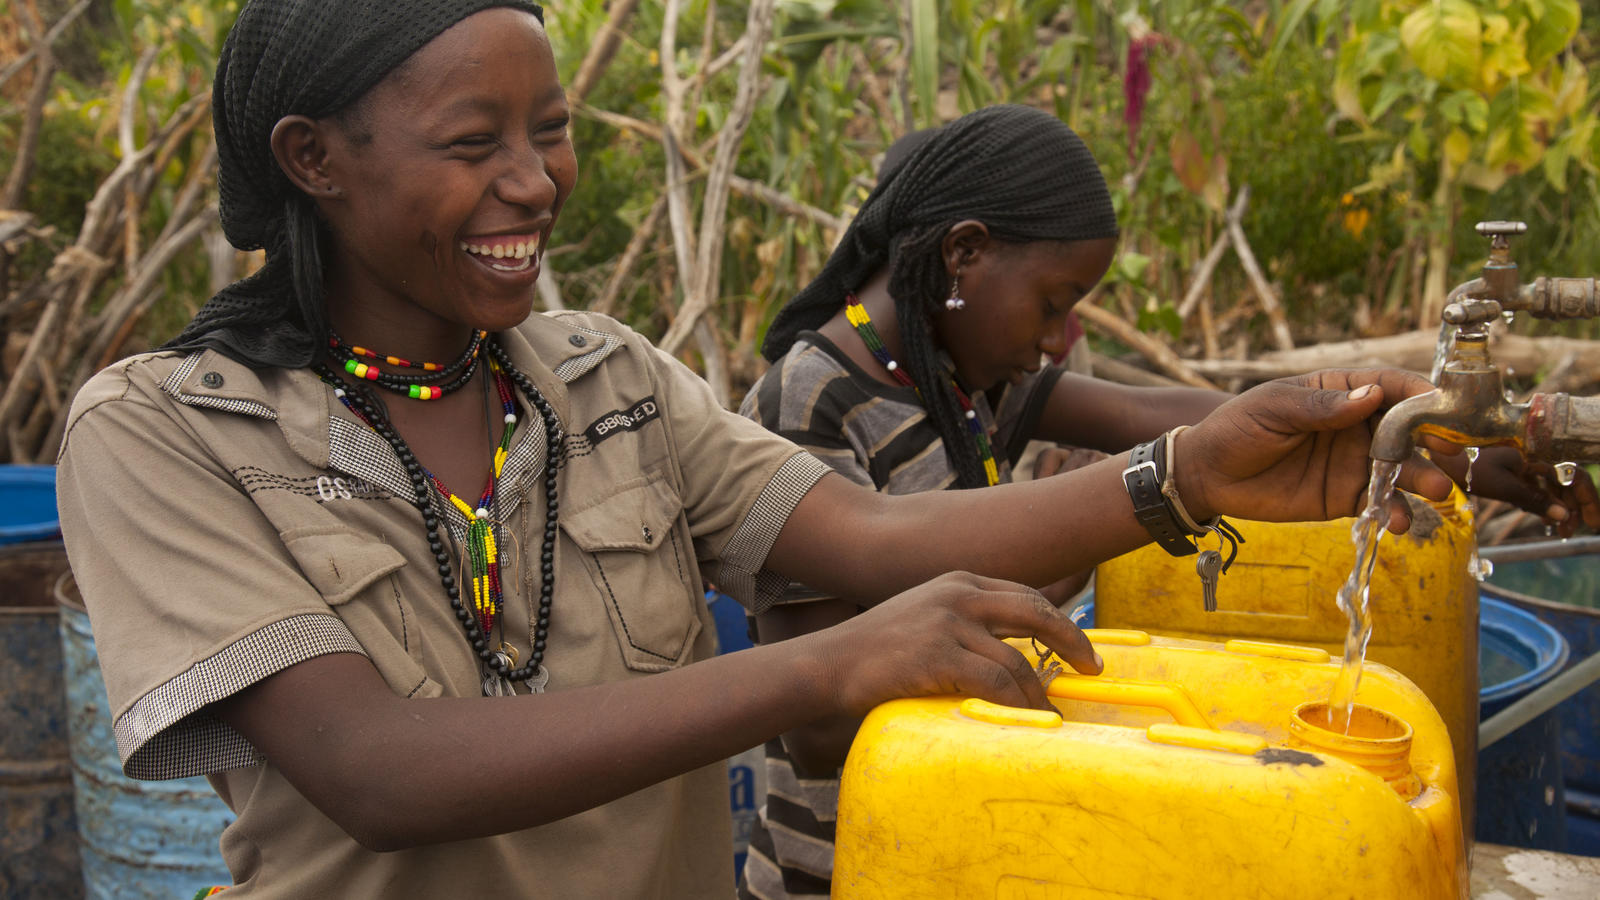 Kappa, smiles as she collects clean water from a tapstand, Aba Roba, Konso, Ethiopia, 2012.